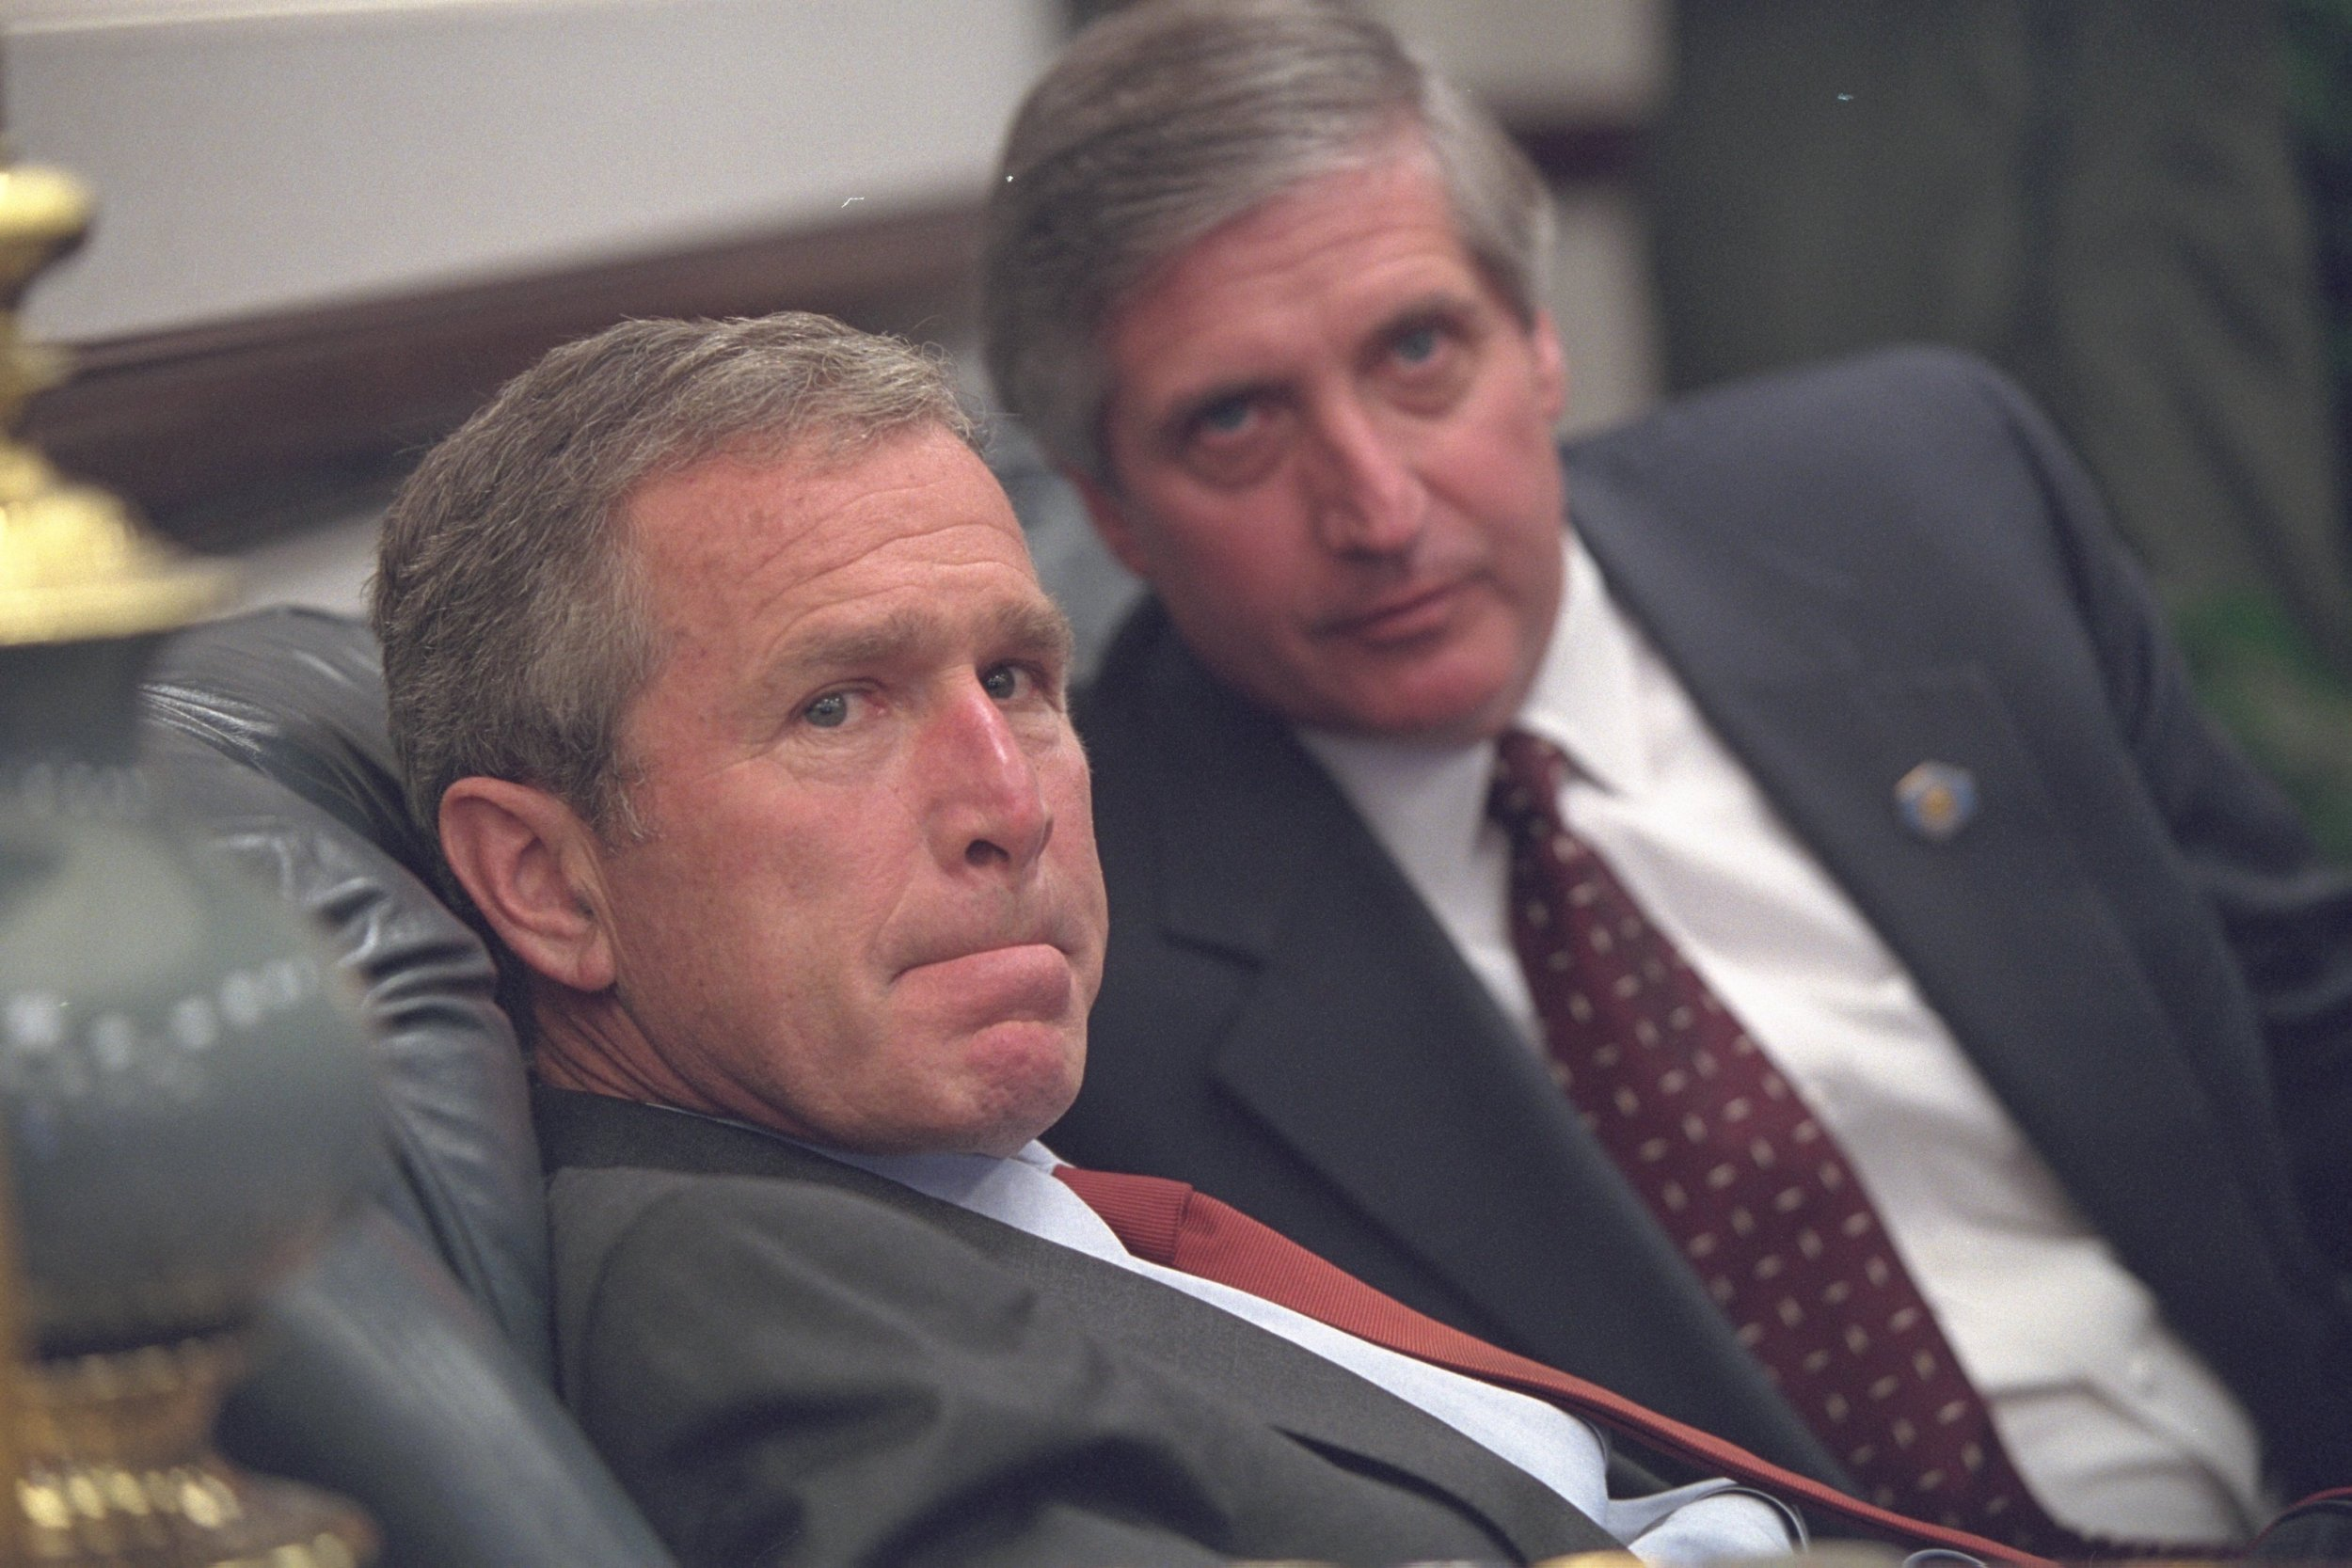 Darkest moments of George W Bush's presidency retold in newly released 9/11 pictures